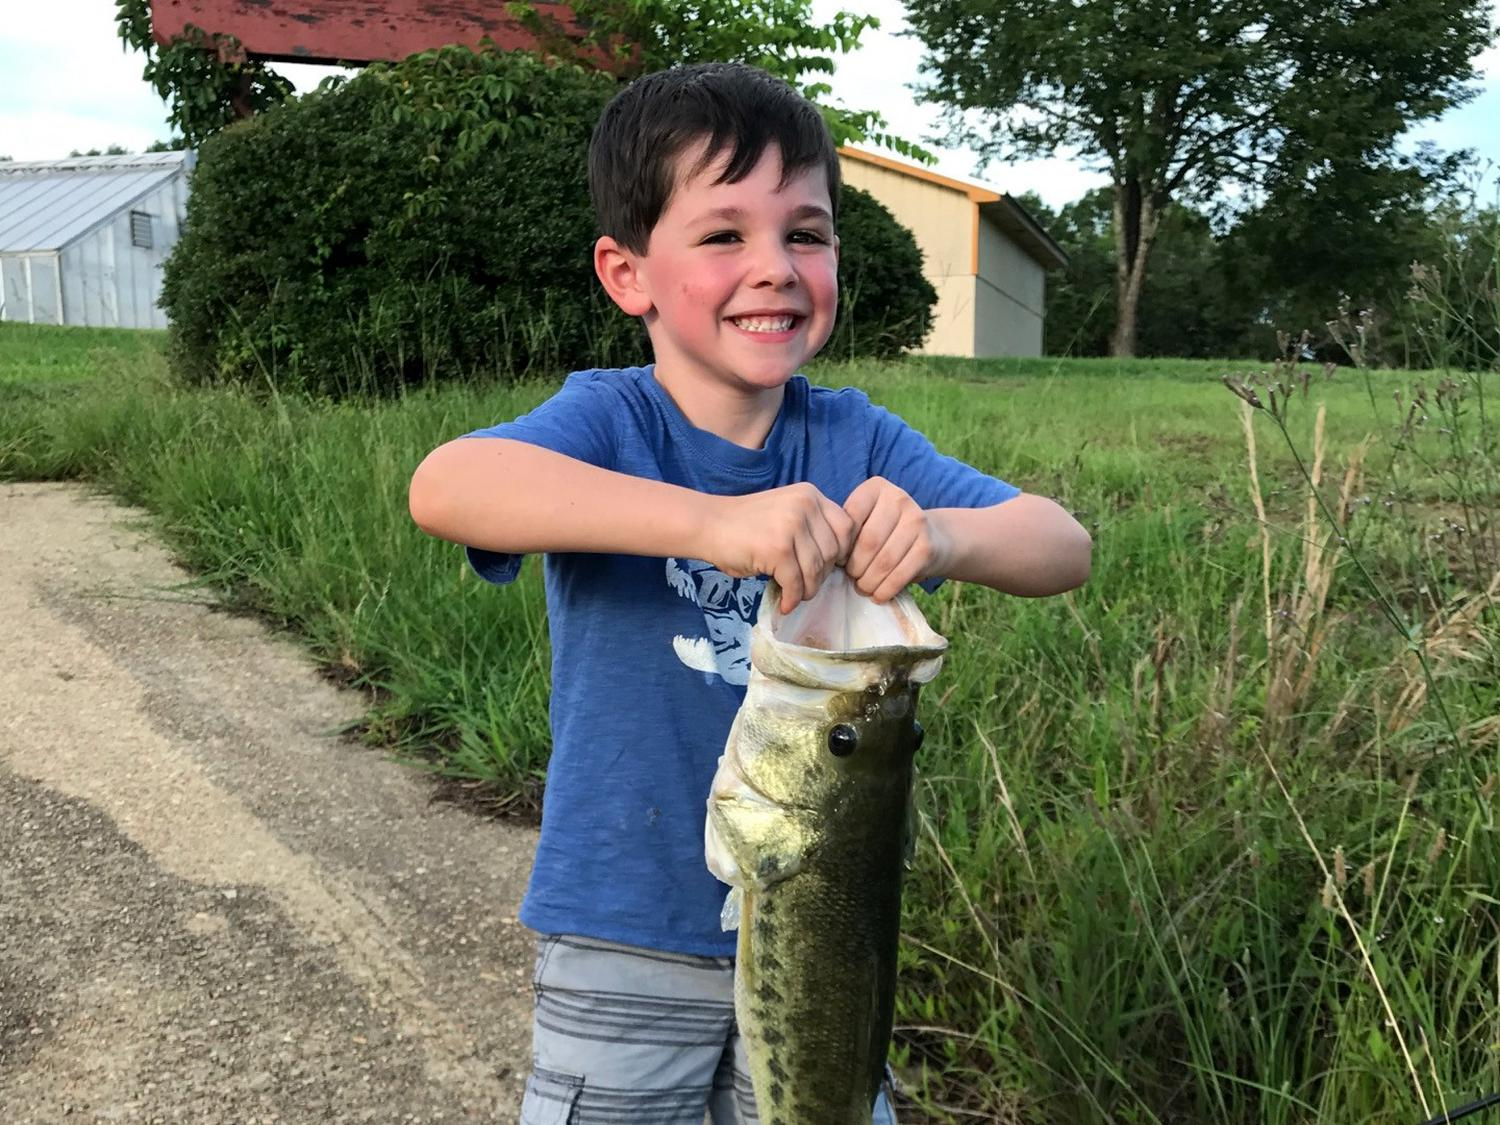 Young boy in blue shirt holding large fish.